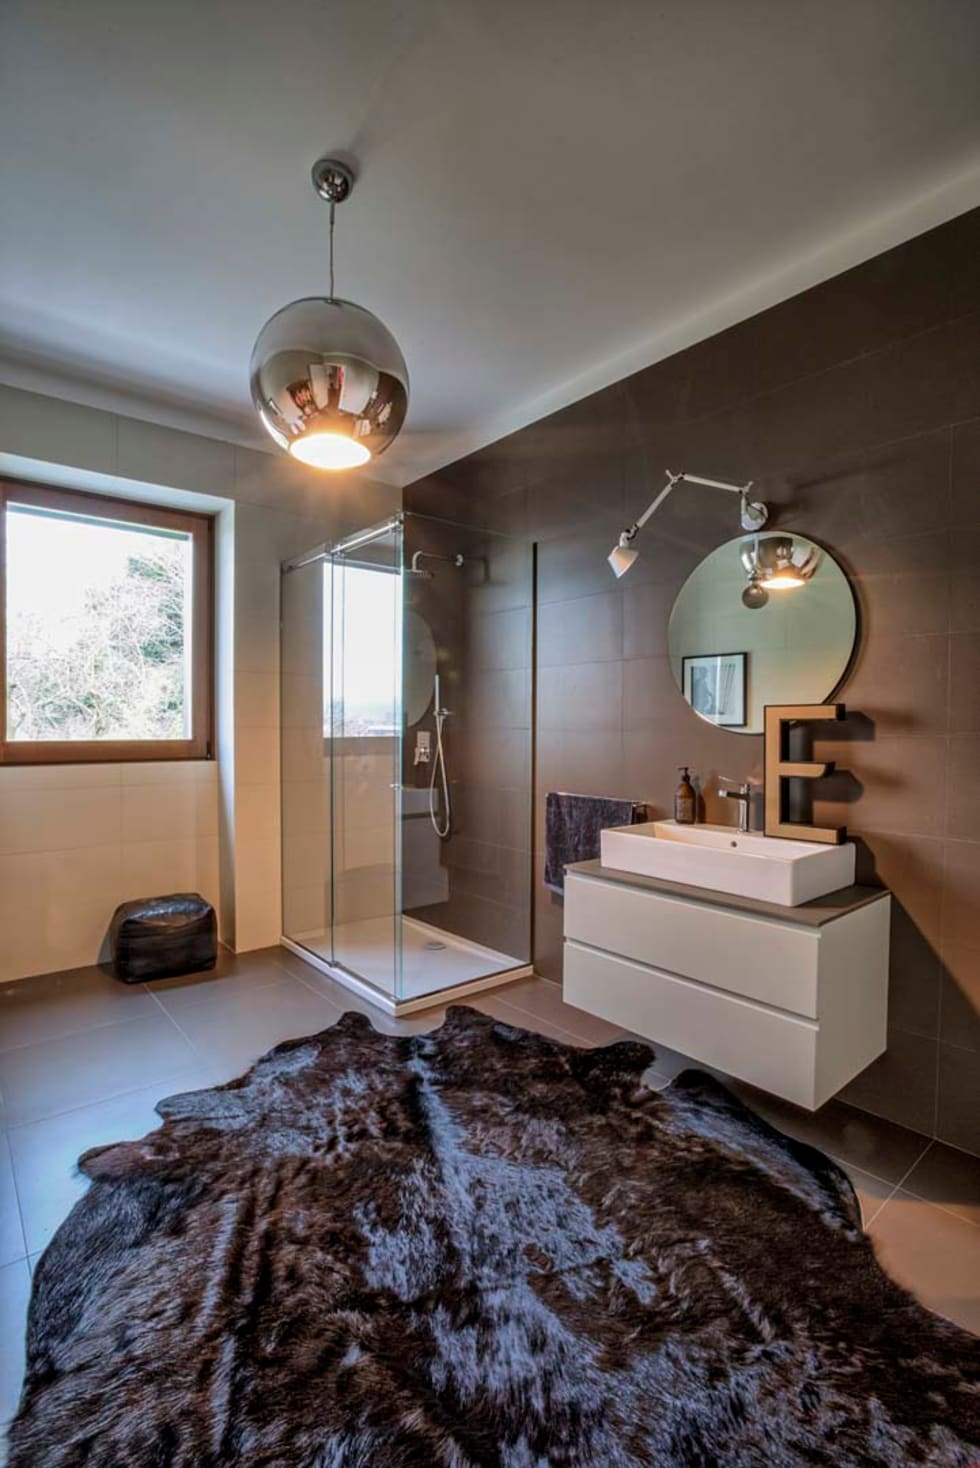 10 bathrooms with showers that will make you want to remove the tub